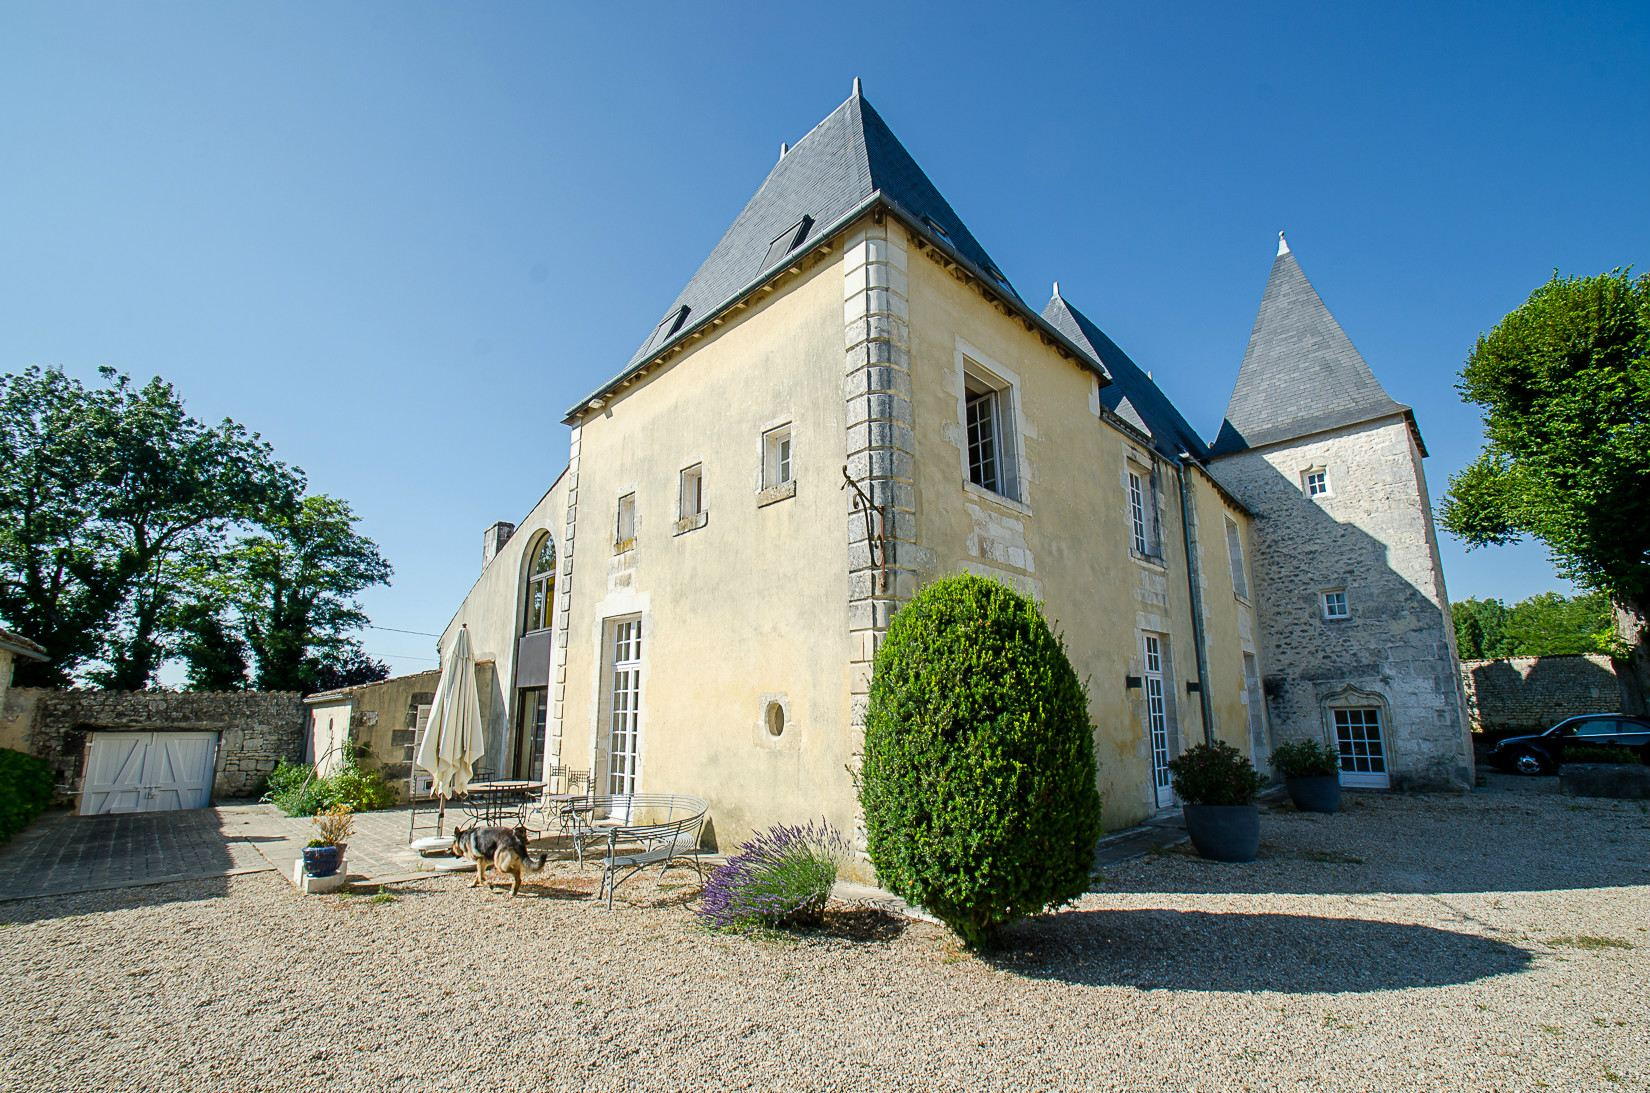 Property For Sale at 19th century Castle with 9 hole golf course